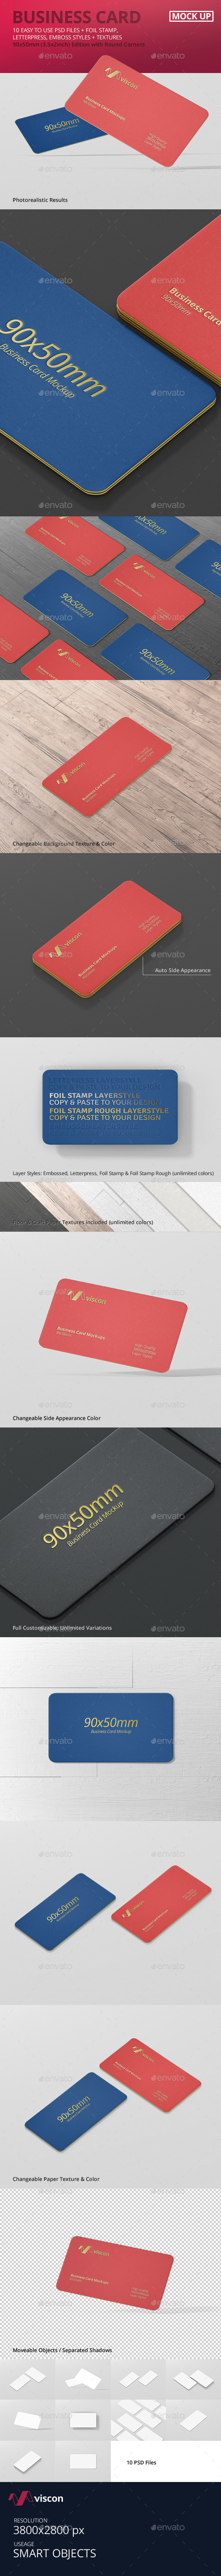 Business Card Mockup Round Corner - Business Cards Print